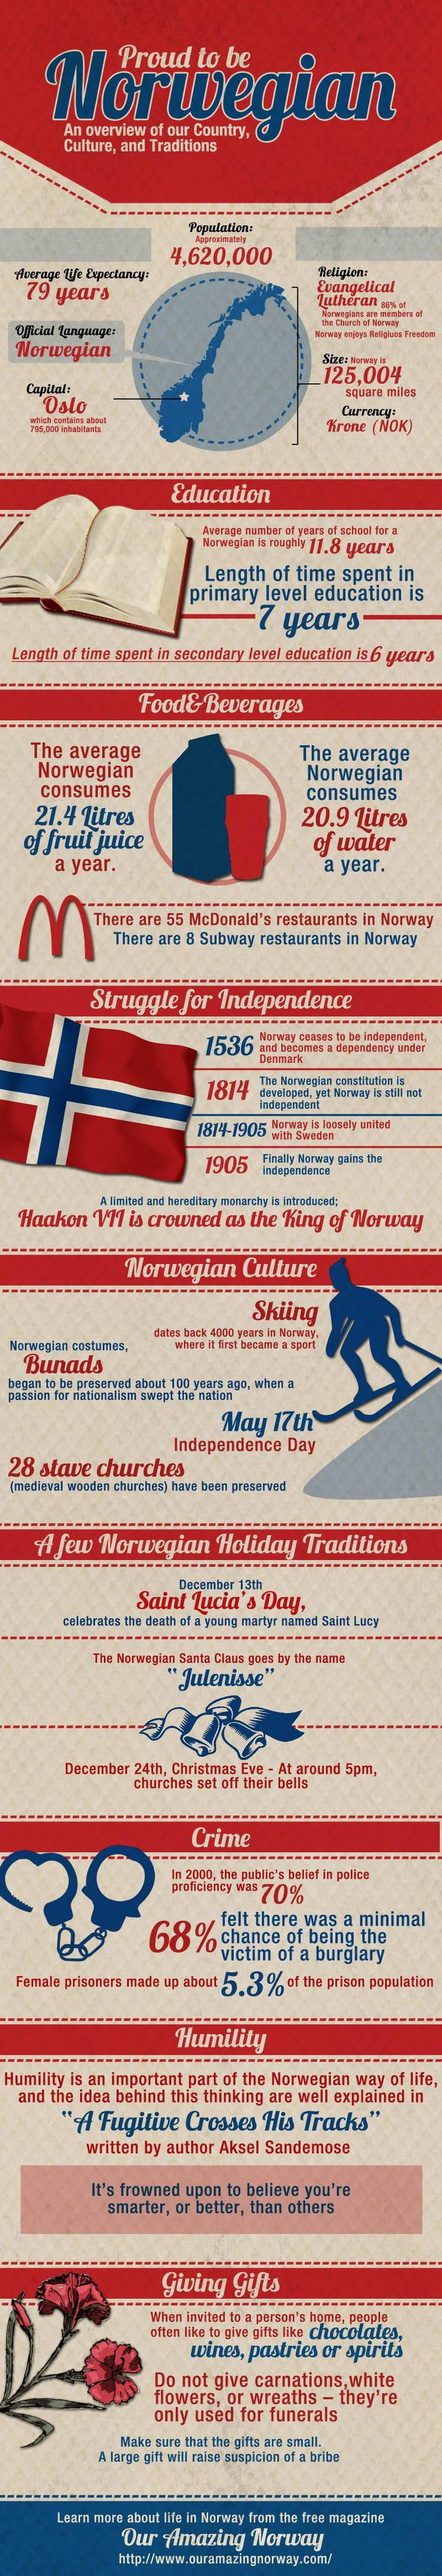 best 25 norway map ideas on pinterest history of norway norway